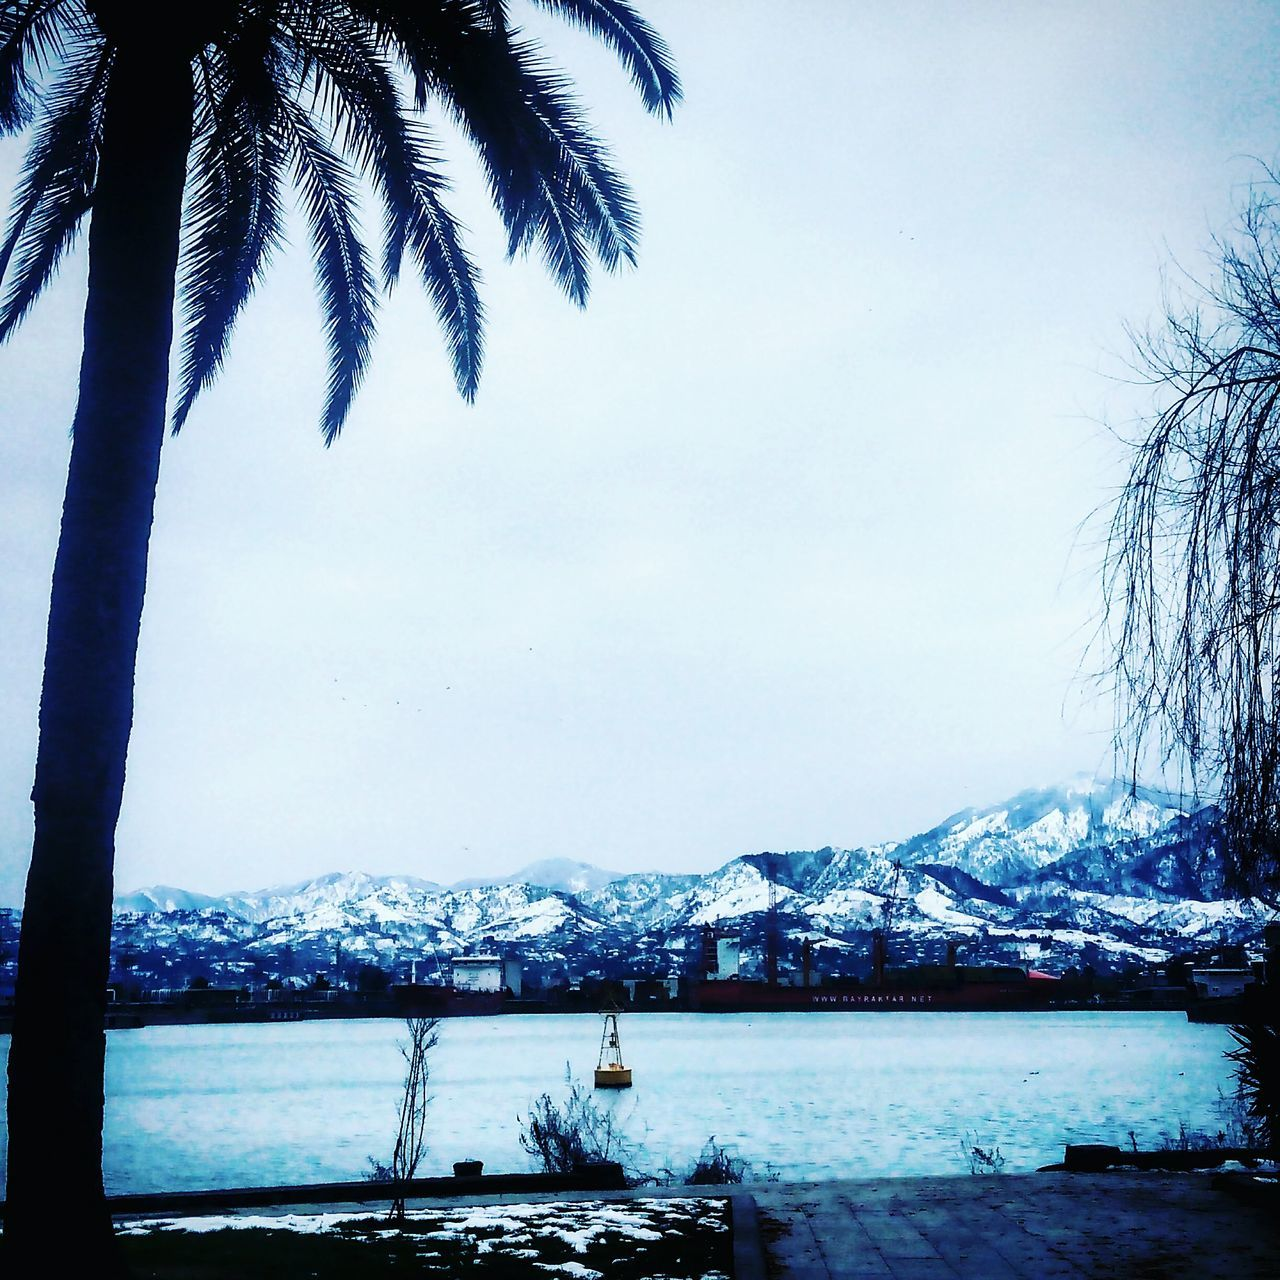 snow, tree, scenics, winter, mountain, beauty in nature, nature, cold temperature, tranquil scene, water, palm tree, tranquility, outdoors, day, sky, no people, mountain range, travel destinations, vacations, landscape